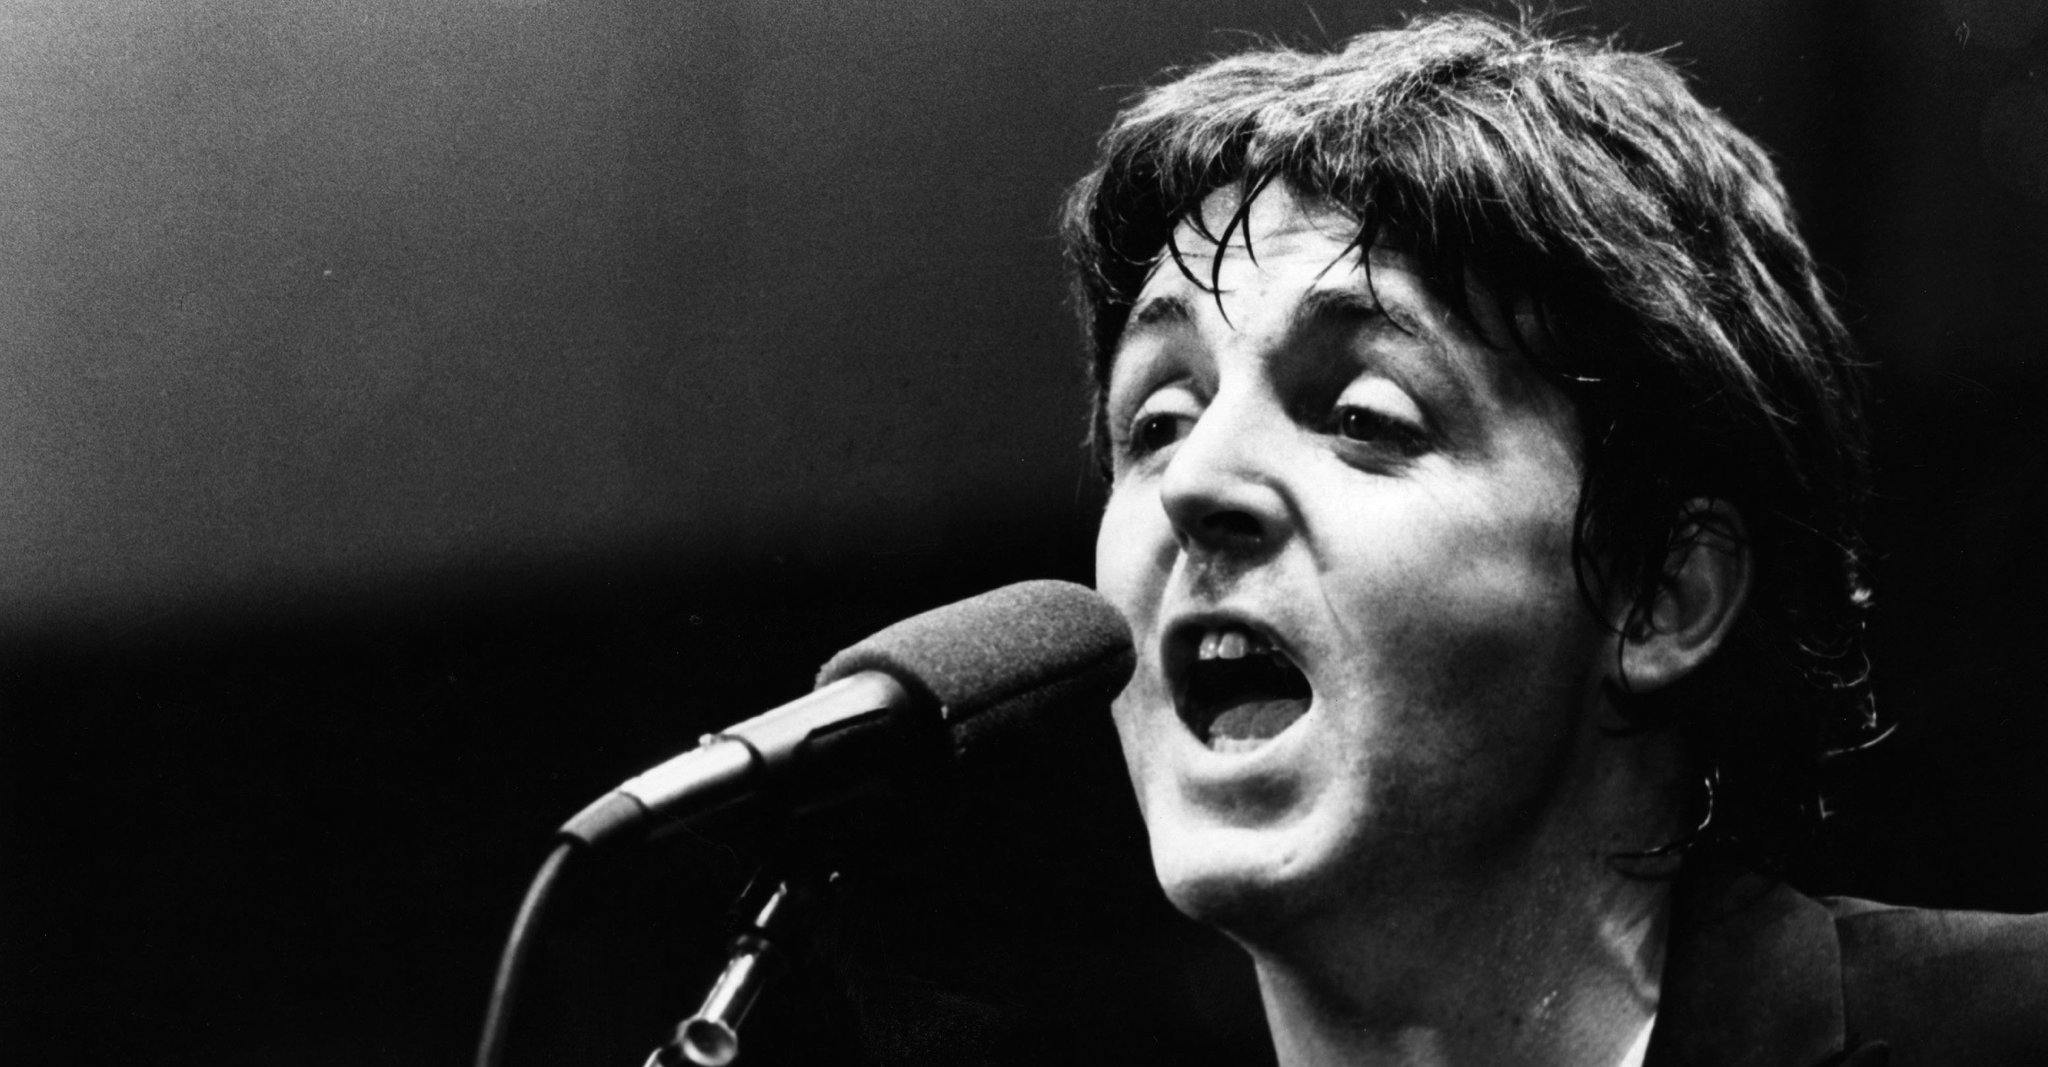 Paul McCartney released his first solo album 47 years ago today https://t.co/GbbDoYSFJE https://t.co/A60lIS7Lpk